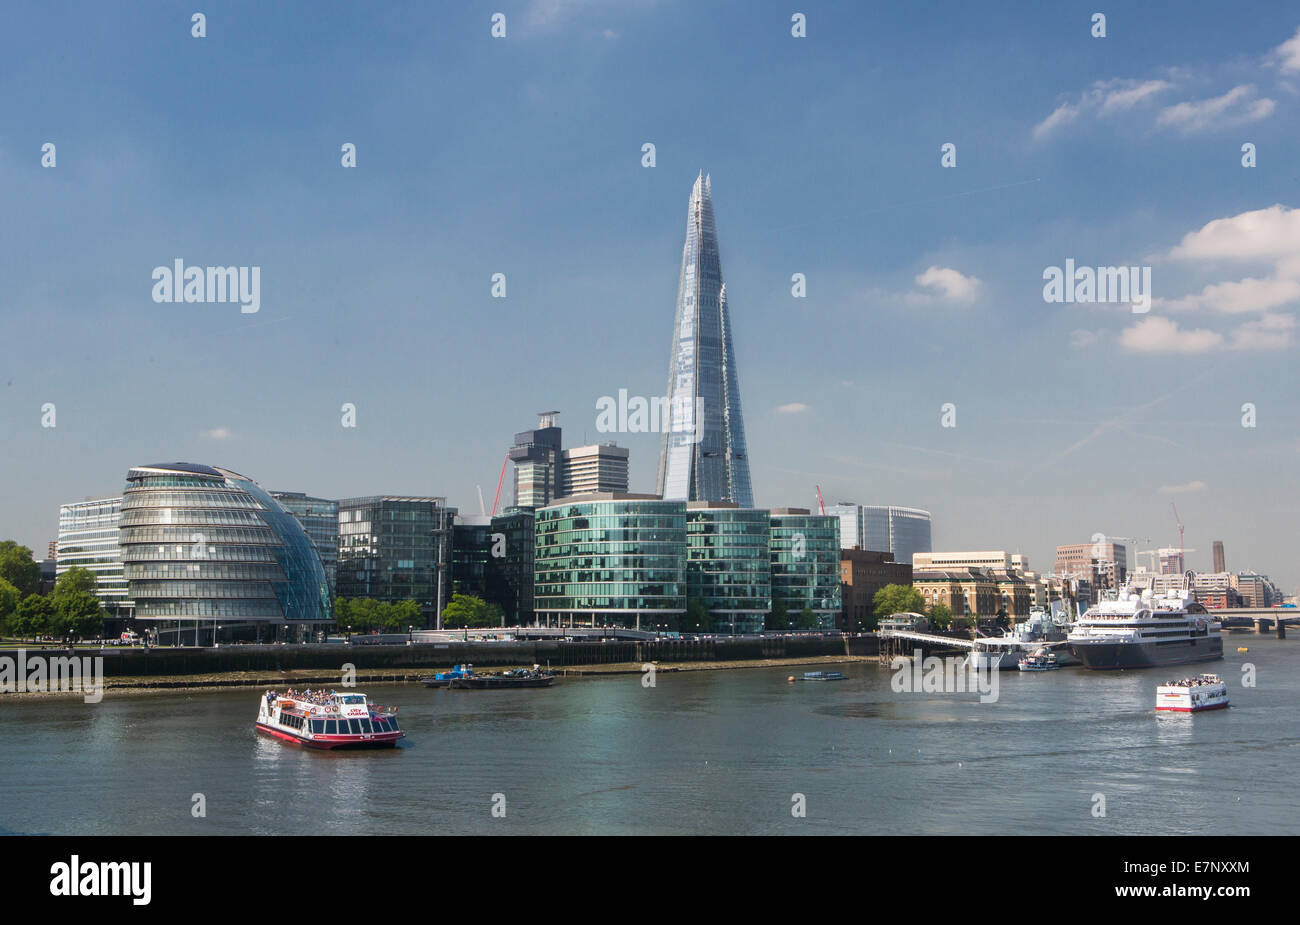 Bâtiment, City, City Hall, London, England, UK, d'échardes, architecture, bateau, nouveau, rivière, Photo Stock